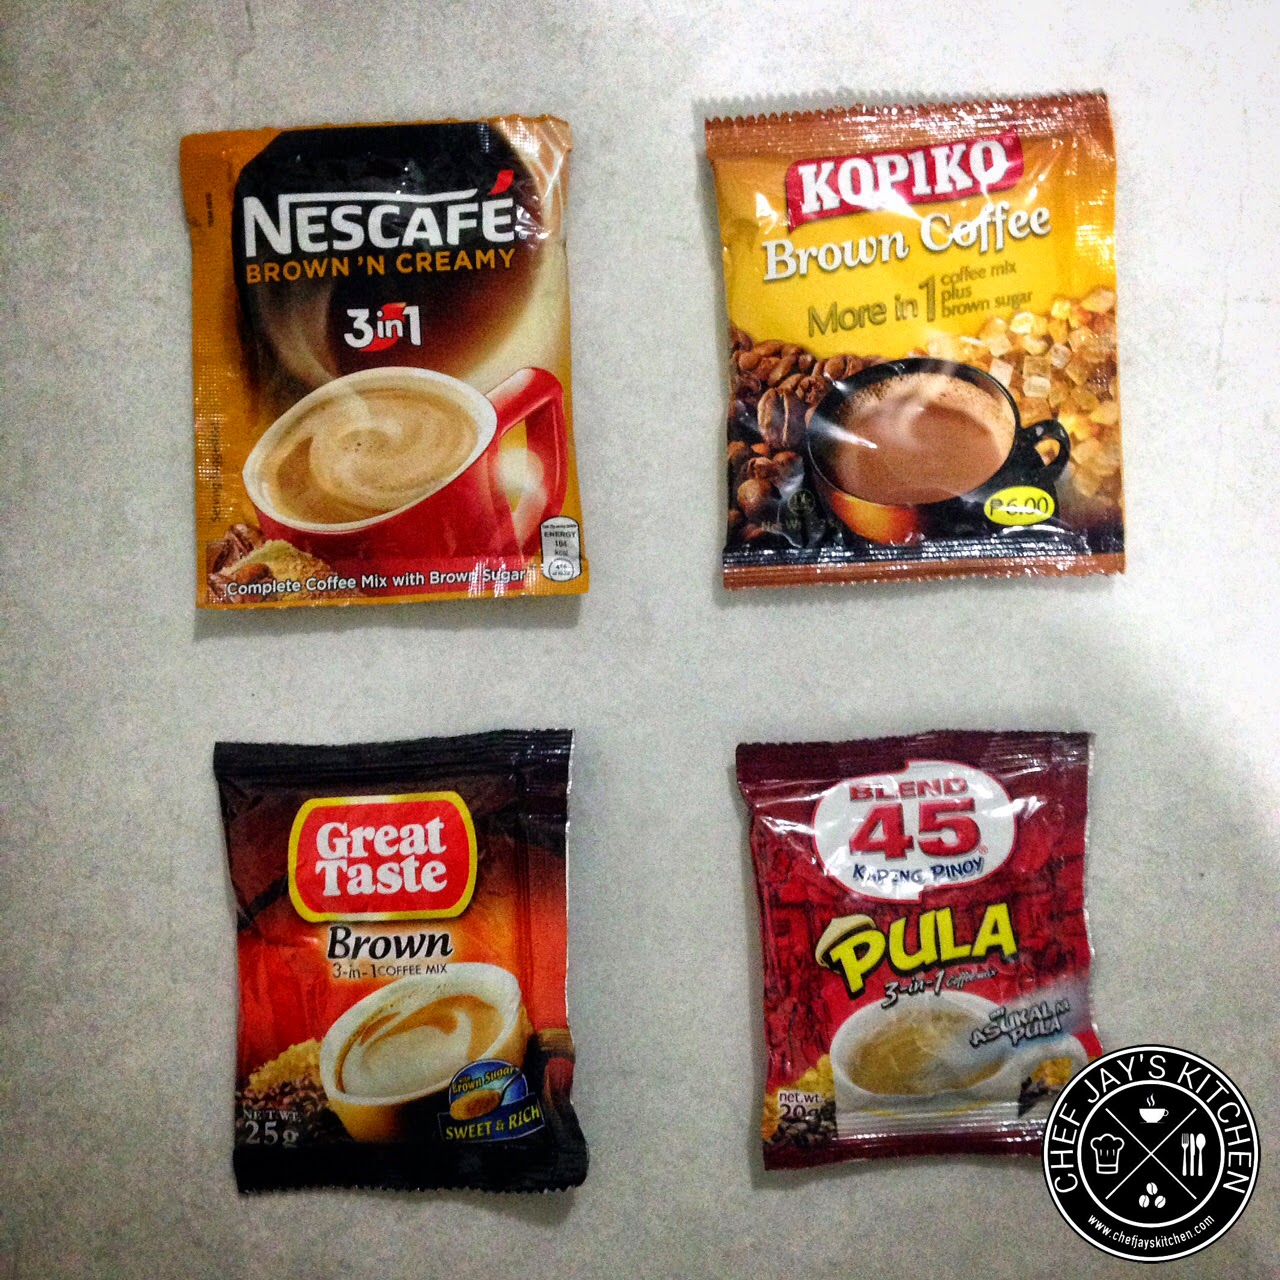 Brown Coffee Brands in the Philippines Review